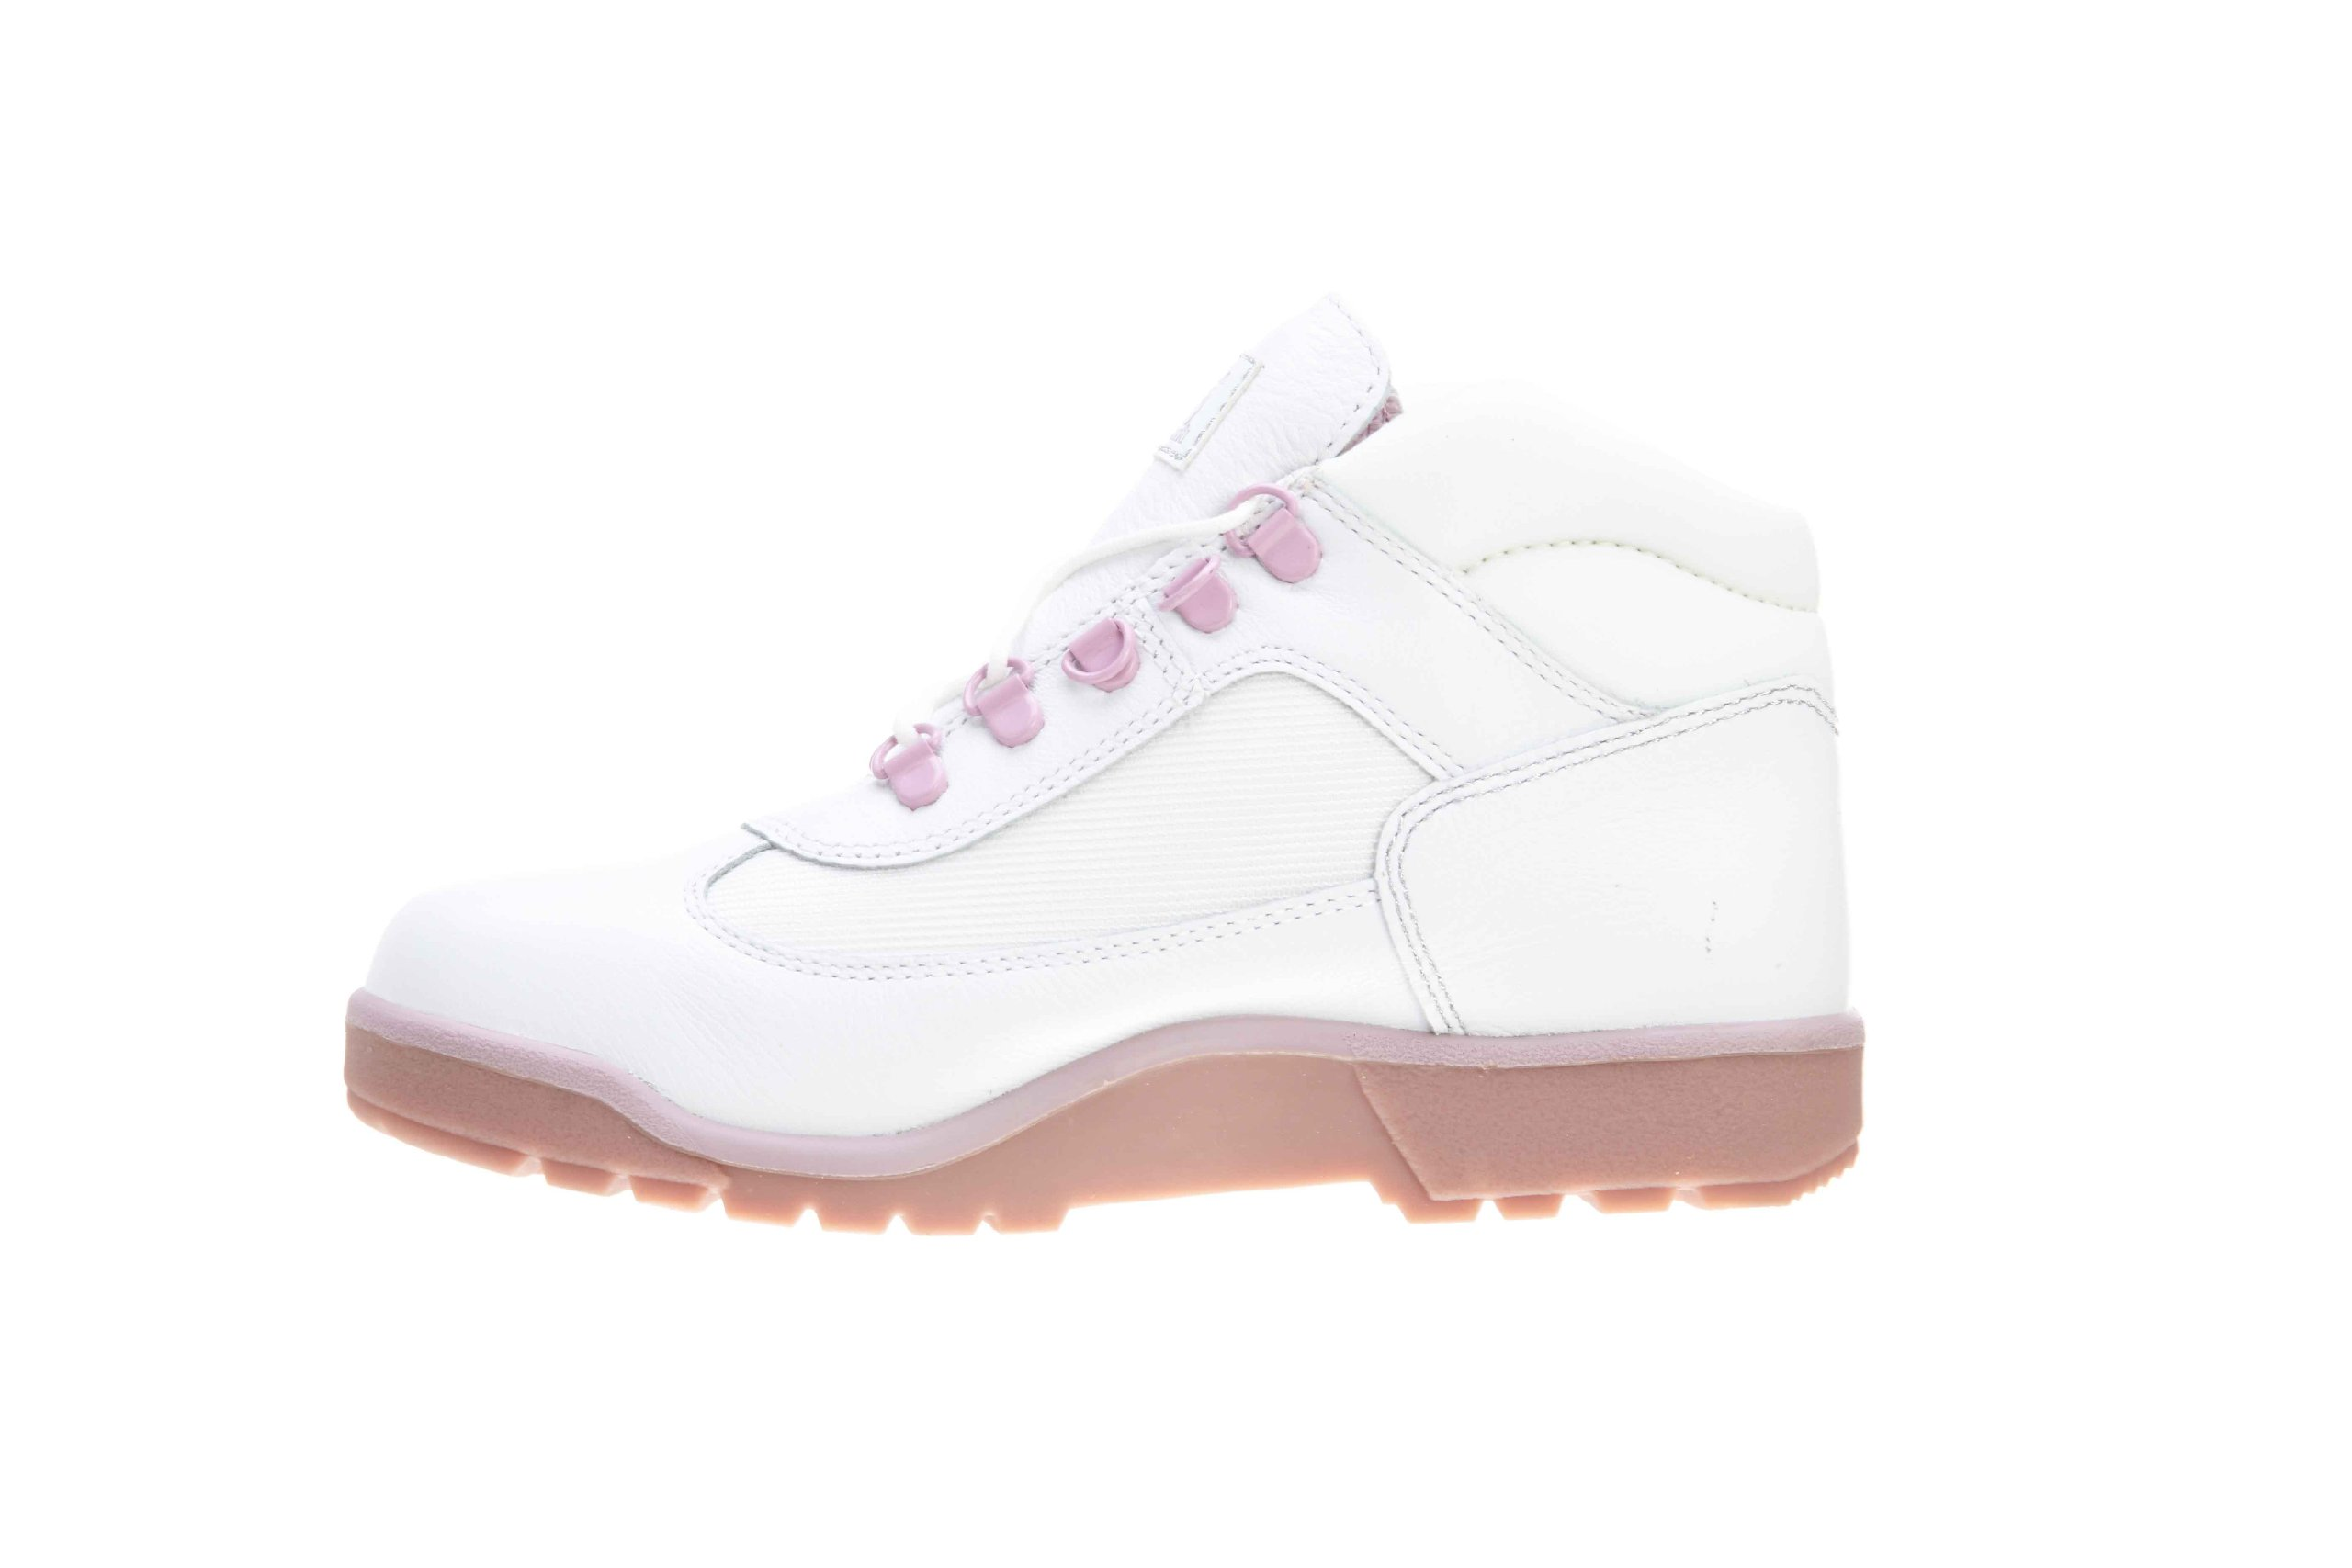 Timberland Field Boots (Gs) Big Kids Style: 25985-LUXWHITE Size: 4.5 by Timberland (Image #4)